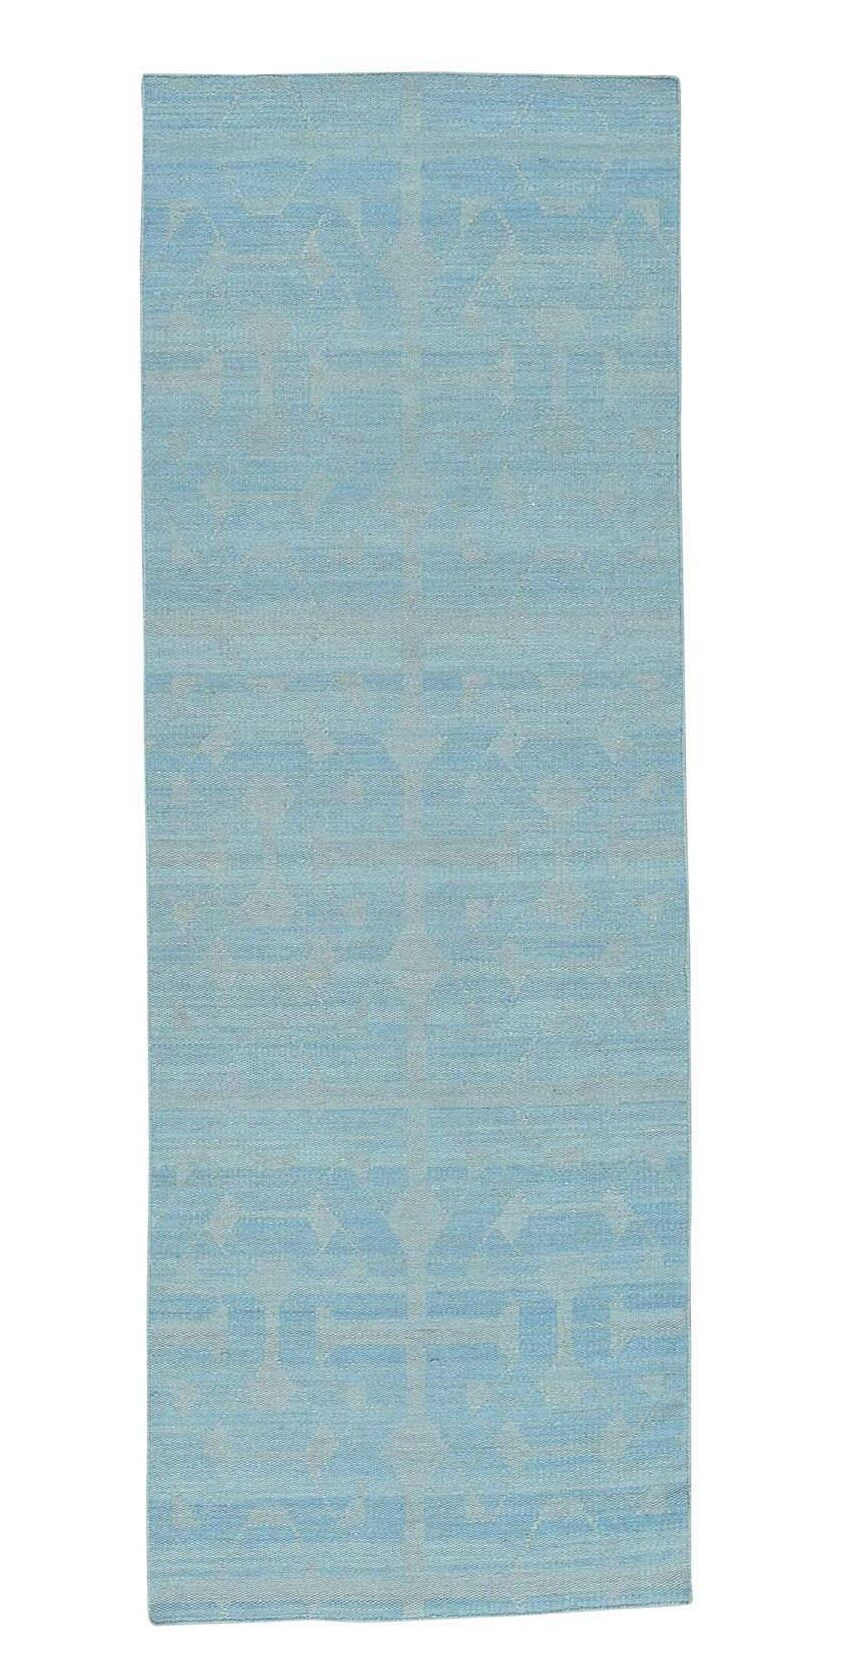 One-of-a-Kind Reversible Flat Weave Durie Kilim Hand-Knotted Sky Blue Area Rug